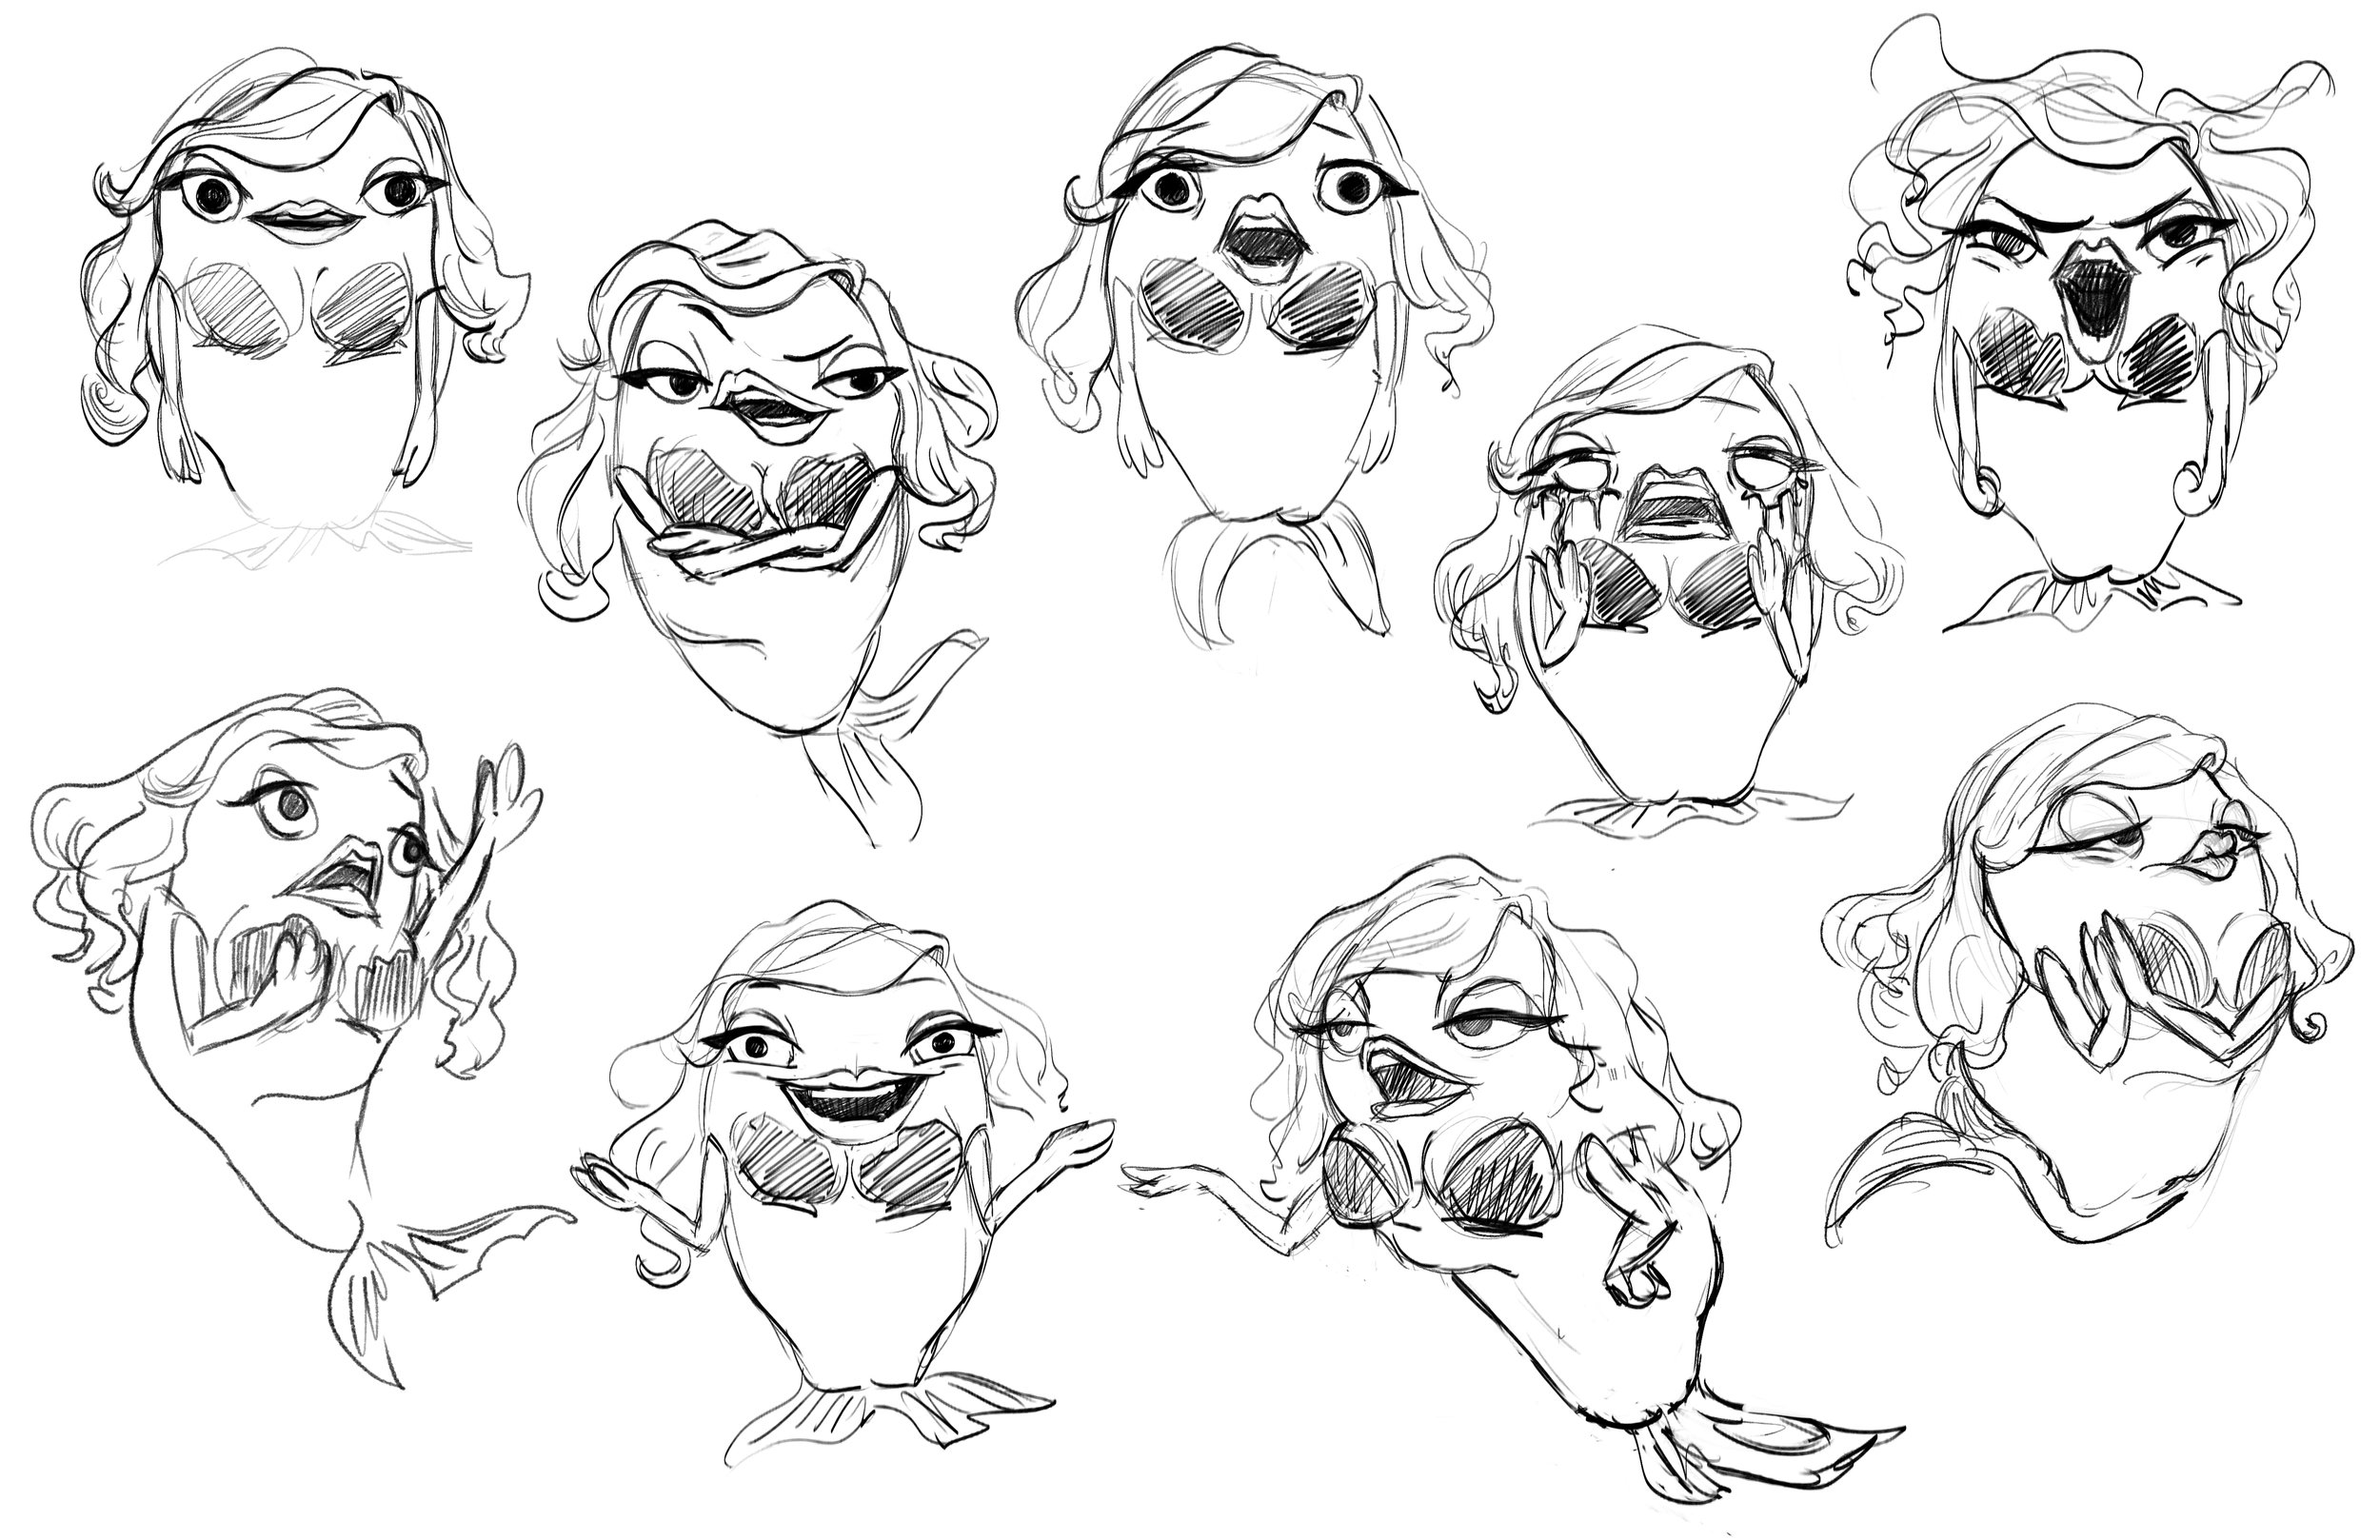 Shelly_Expressions.jpg